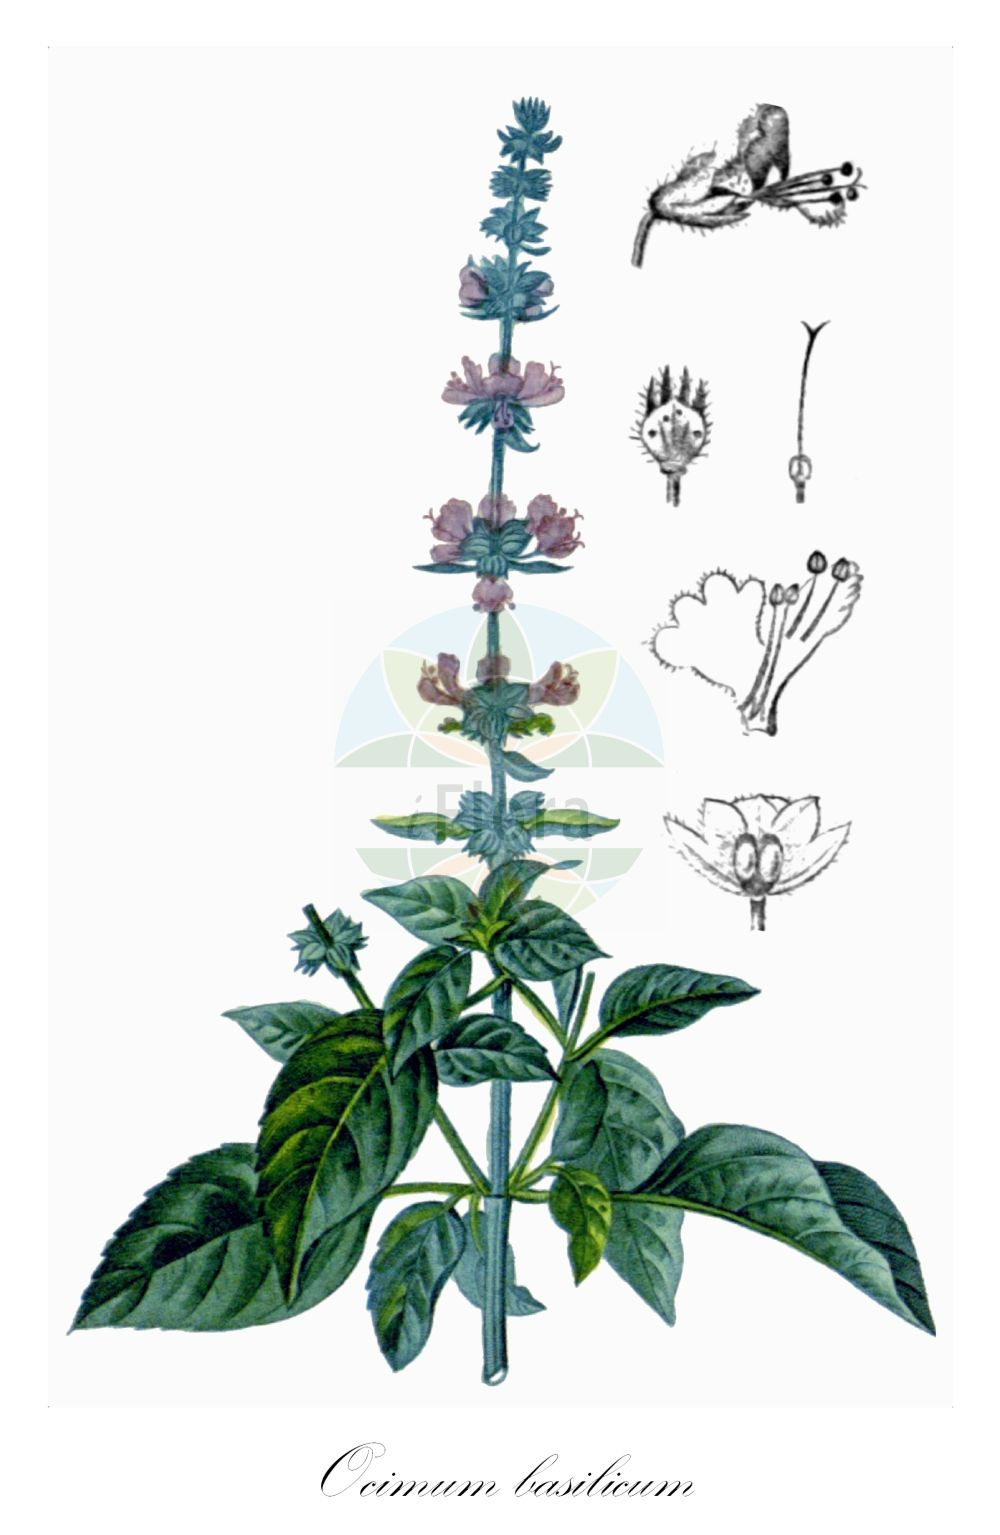 Historische Abbildung von Ocimum basilicum. Das Bild zeigt Blatt, Bluete, Frucht und Same. ---- Historical Drawing of Ocimum basilicum.The image is showing leaf, flower, fruit and seed.(Ocimum basilicum,Ocimum album,Ocimum anisatum,Ocimum barrelieri,Ocimum bullatum,Ocimum caryophyllatum,Ocimum chevalieri,Ocimum ciliare,Ocimum ciliatum,Ocimum citrodorum,Ocimum cochleatum,Ocimum dentatum,Ocimum hispidum,Ocimum integerrimum,Ocimum lanceolatum,Ocimum laxum,Ocimum majus,Ocimum medium,Ocimum minus,Ocimum nigrum,Ocimum odorum,Ocimum scabrum,Ocimum simile,Ocimum thyrsiflorum,Ocimum urticifolium,Plectranthus barrelieri,Ocimum,Lamiaceae,Lippenbluetengewaechse;Lippenbluetler,Nettle family,Blatt,Bluete,Frucht,Same,leaf,flower,fruit,seed,Chaumeton (1828-1832))